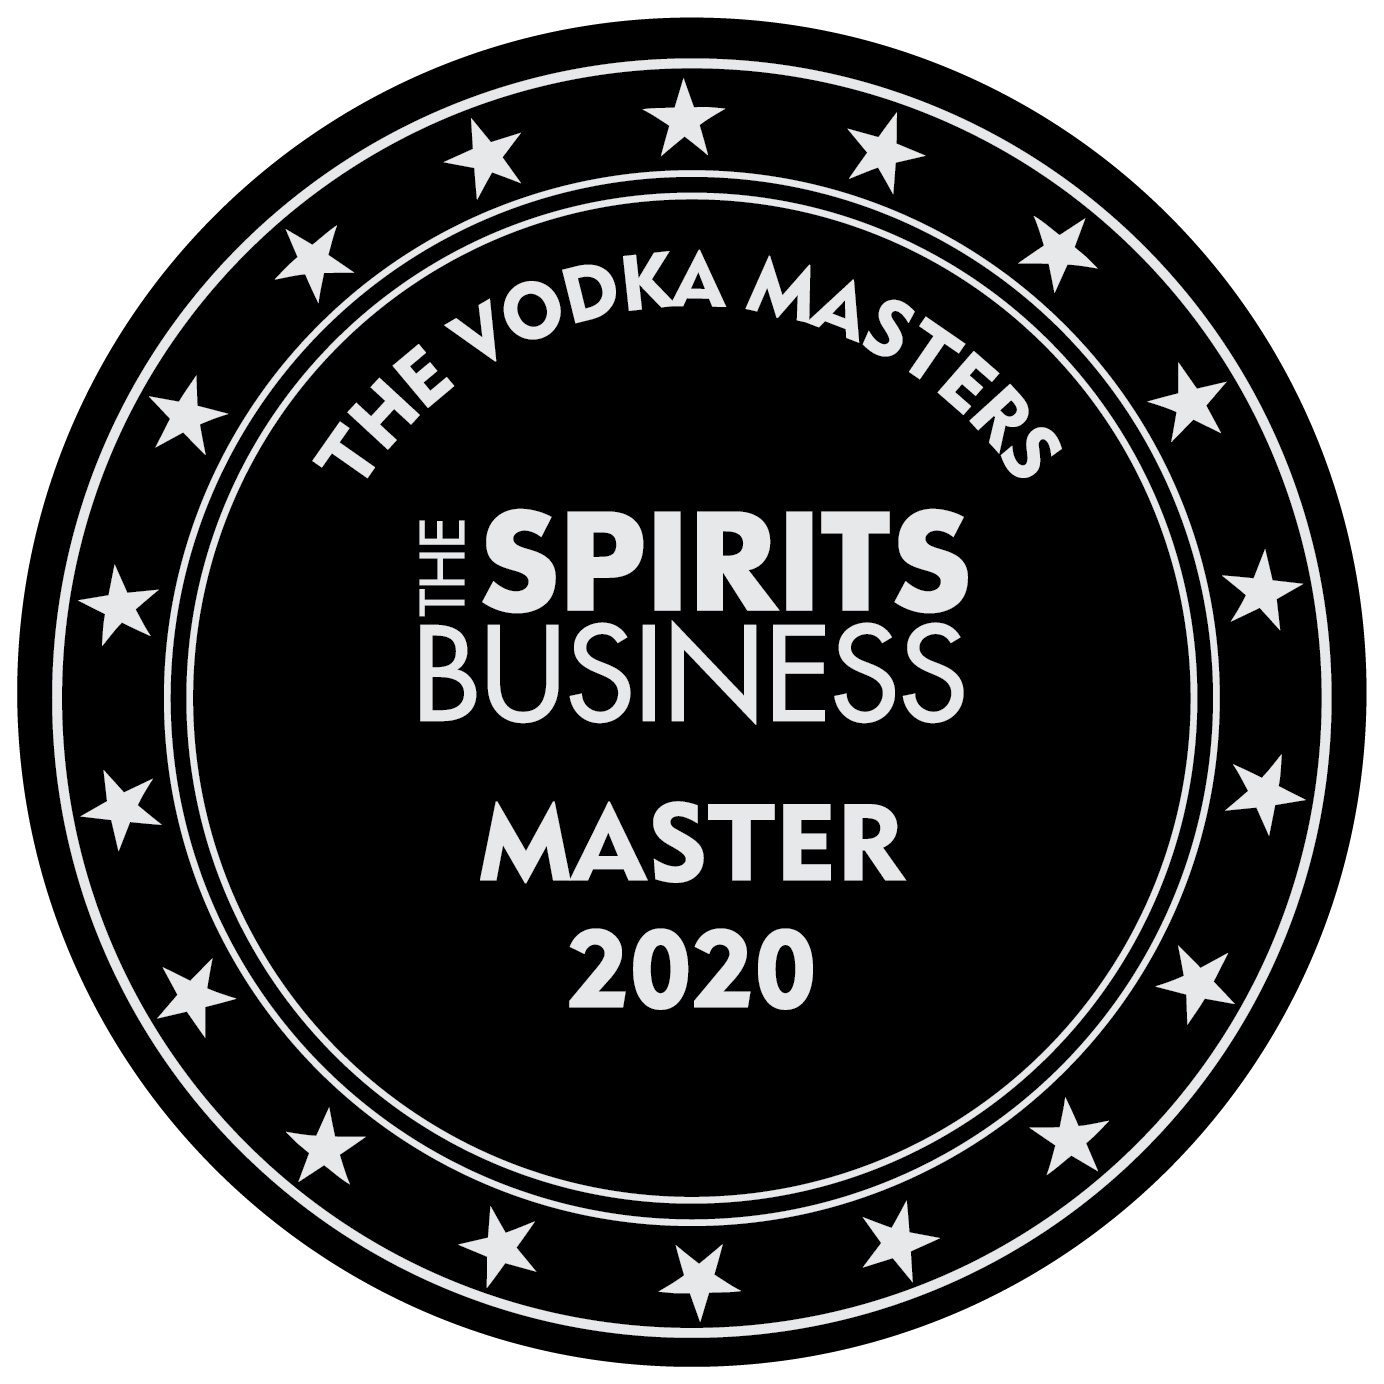 An Master award won by the Stillery amsterdam which reads The Spirit Business Master 2020